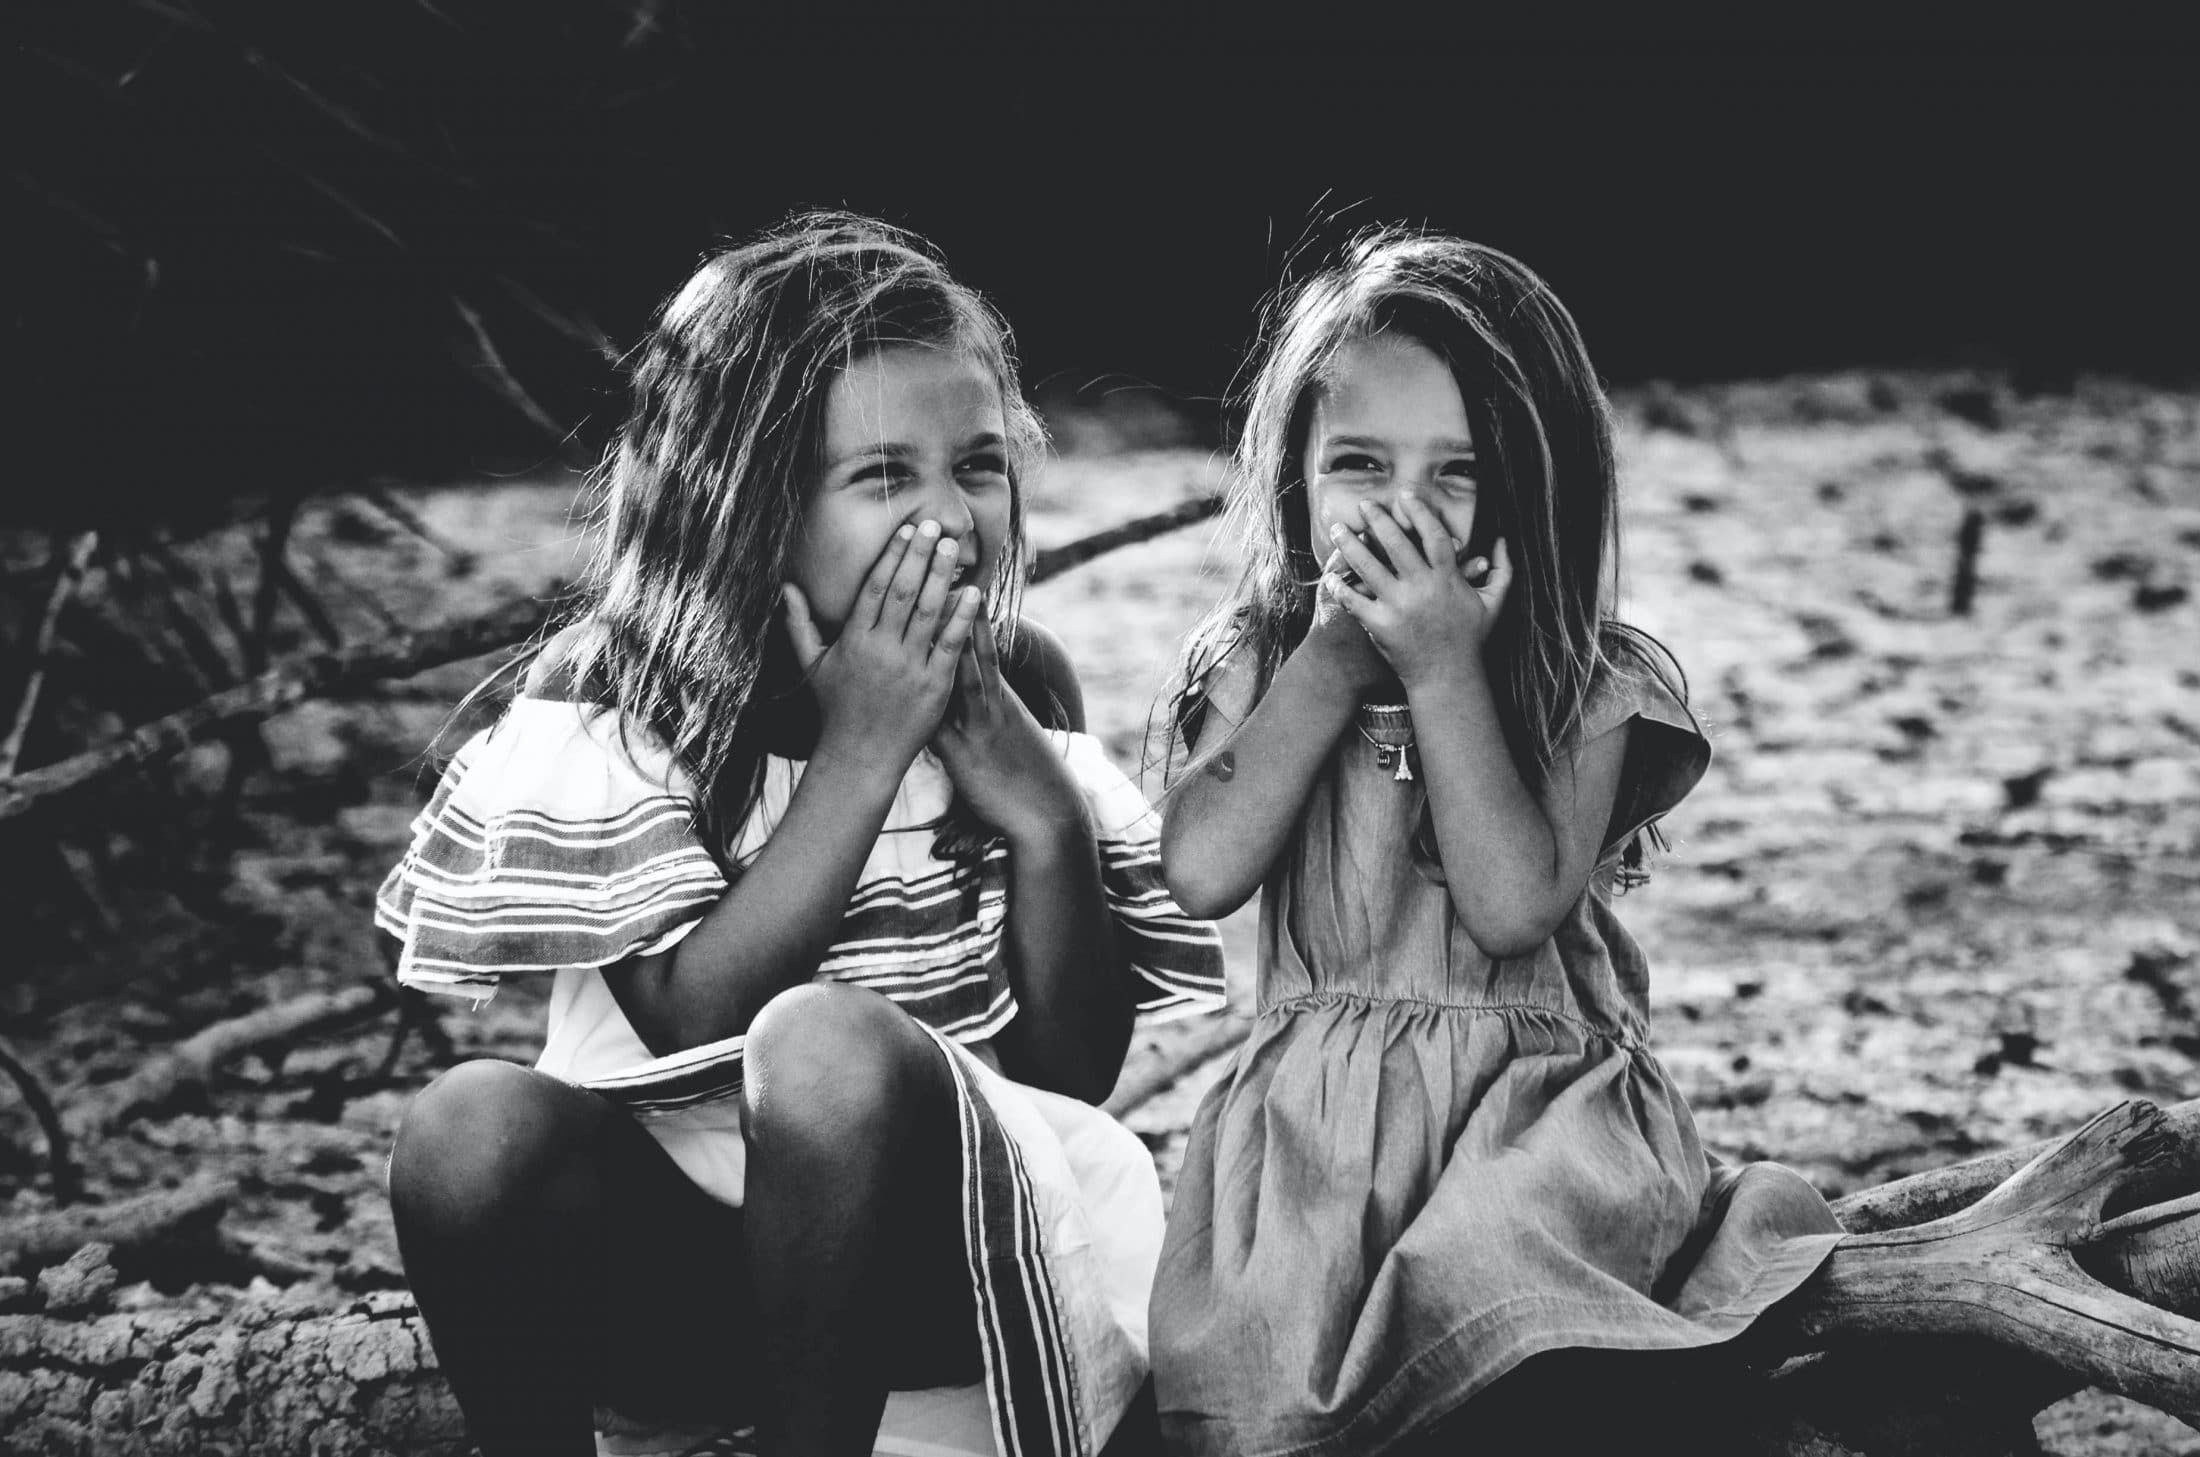 two young girls burning calories while laughing